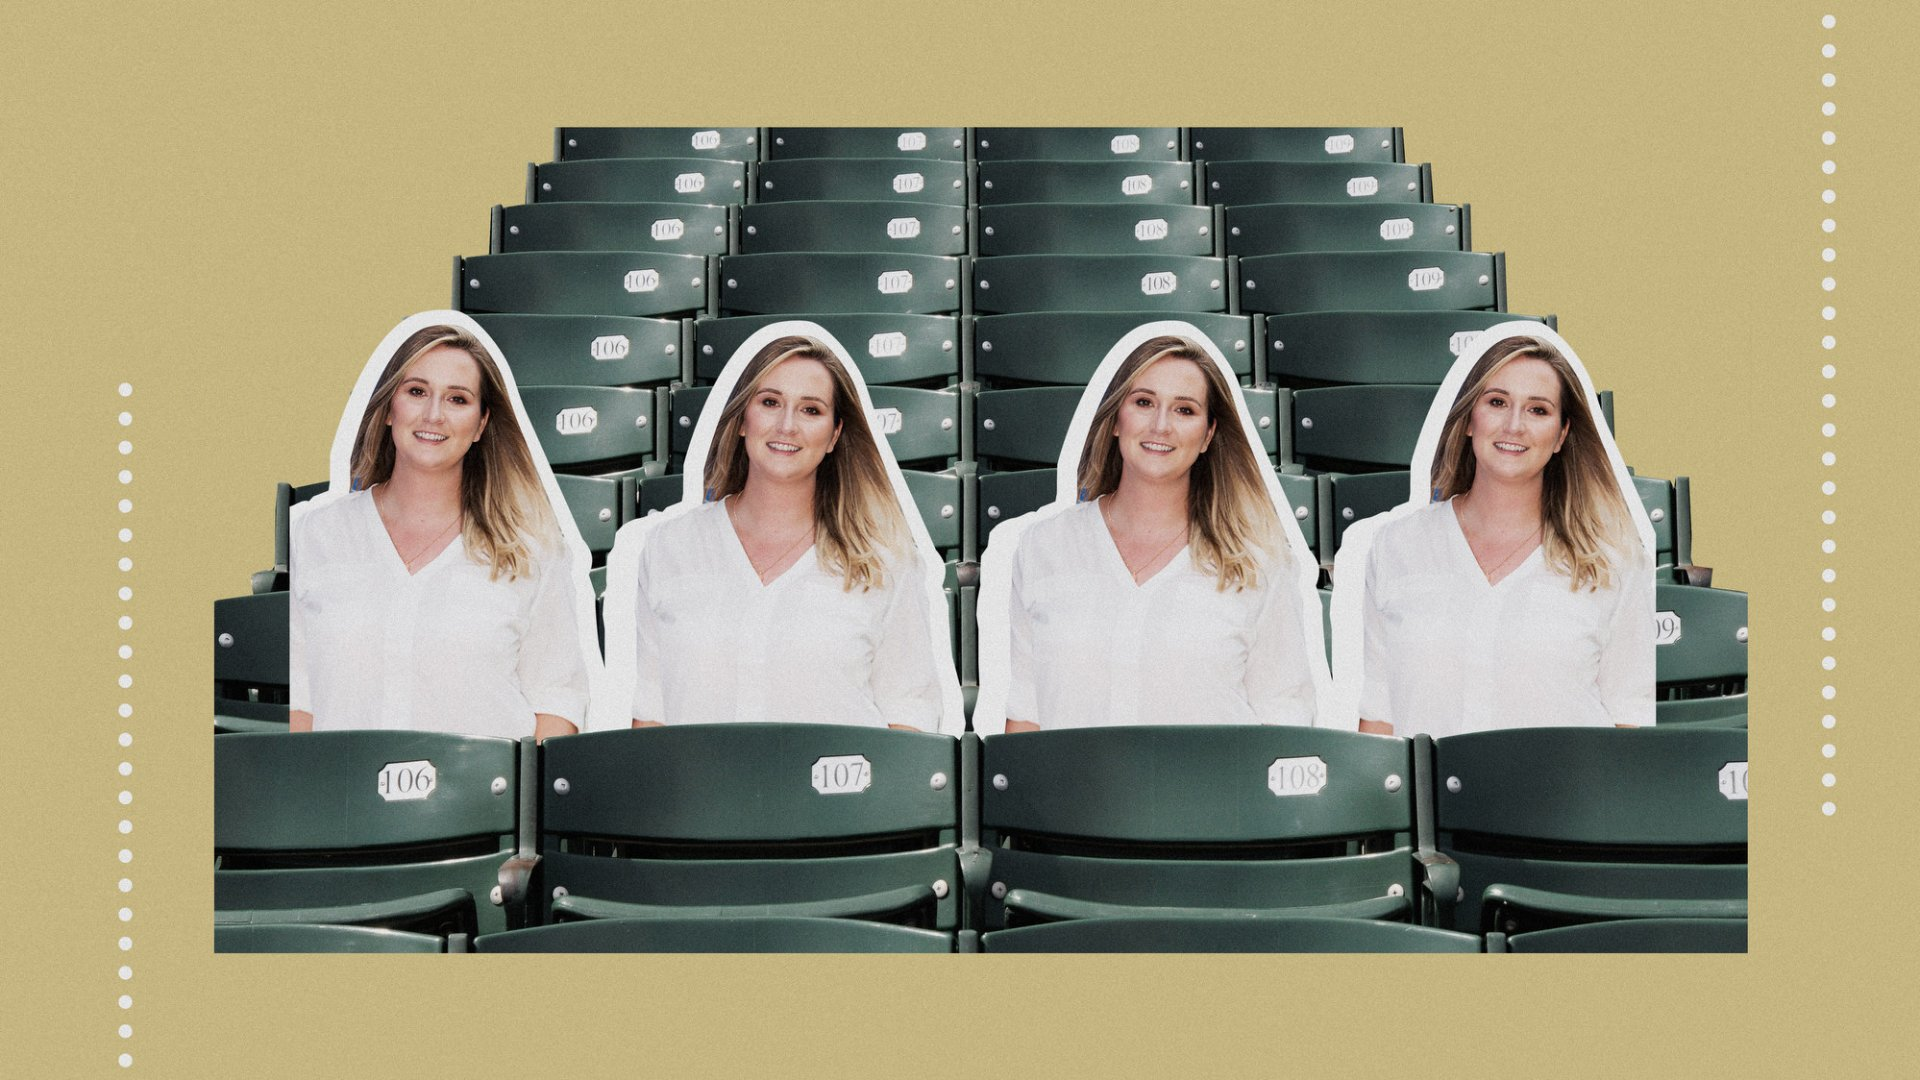 Lara Smedley is the founder of My Fan Seats, a Denver-based company that makes cardboard cutout fans.